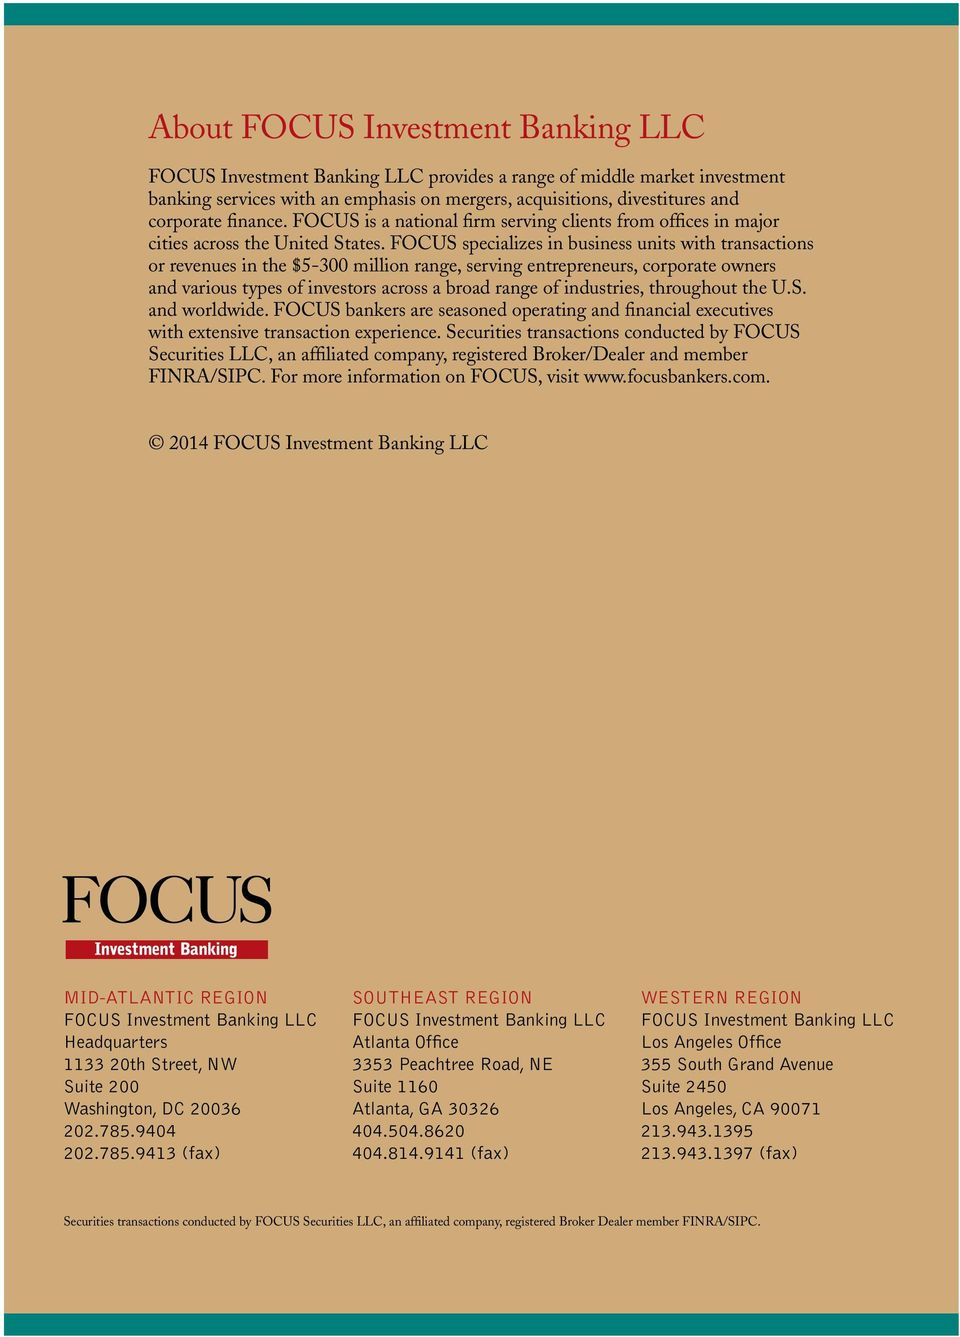 FOCUS specializes in business units with transactions or revenues in the $5-300 million range, serving entrepreneurs, corporate owners and various types of investors across a broad range of